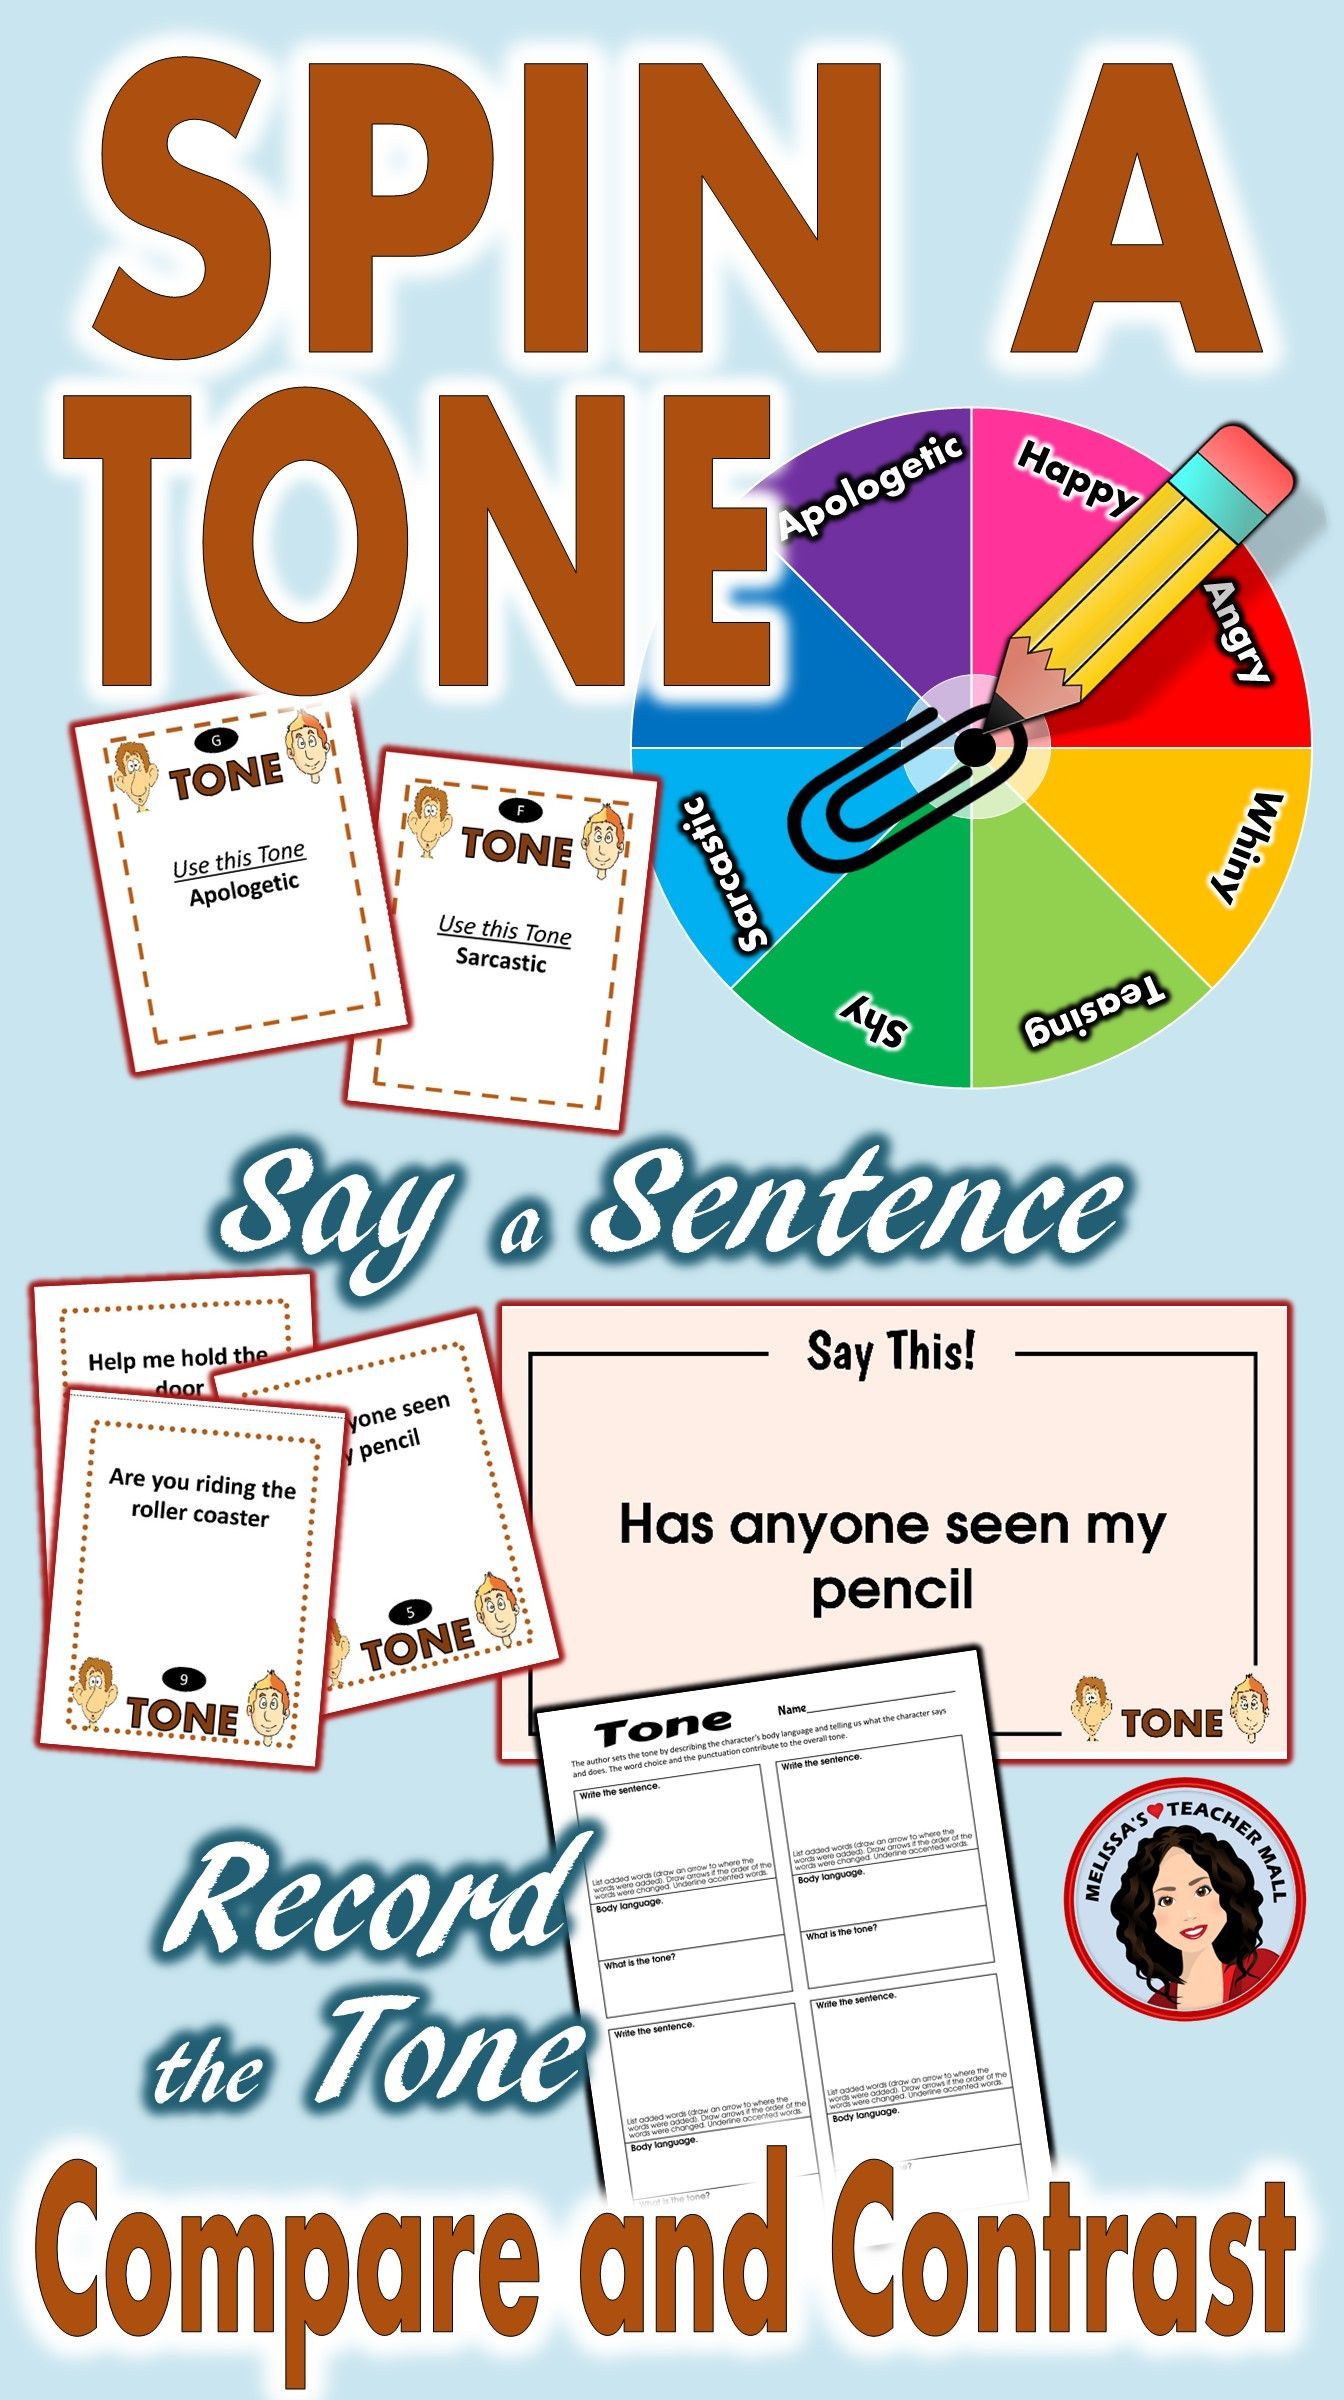 Tone Whole Clas Activity Reading Sentence With Different Word Activities 7 How Doe Paraphrasing Help Reader Understand Poetry